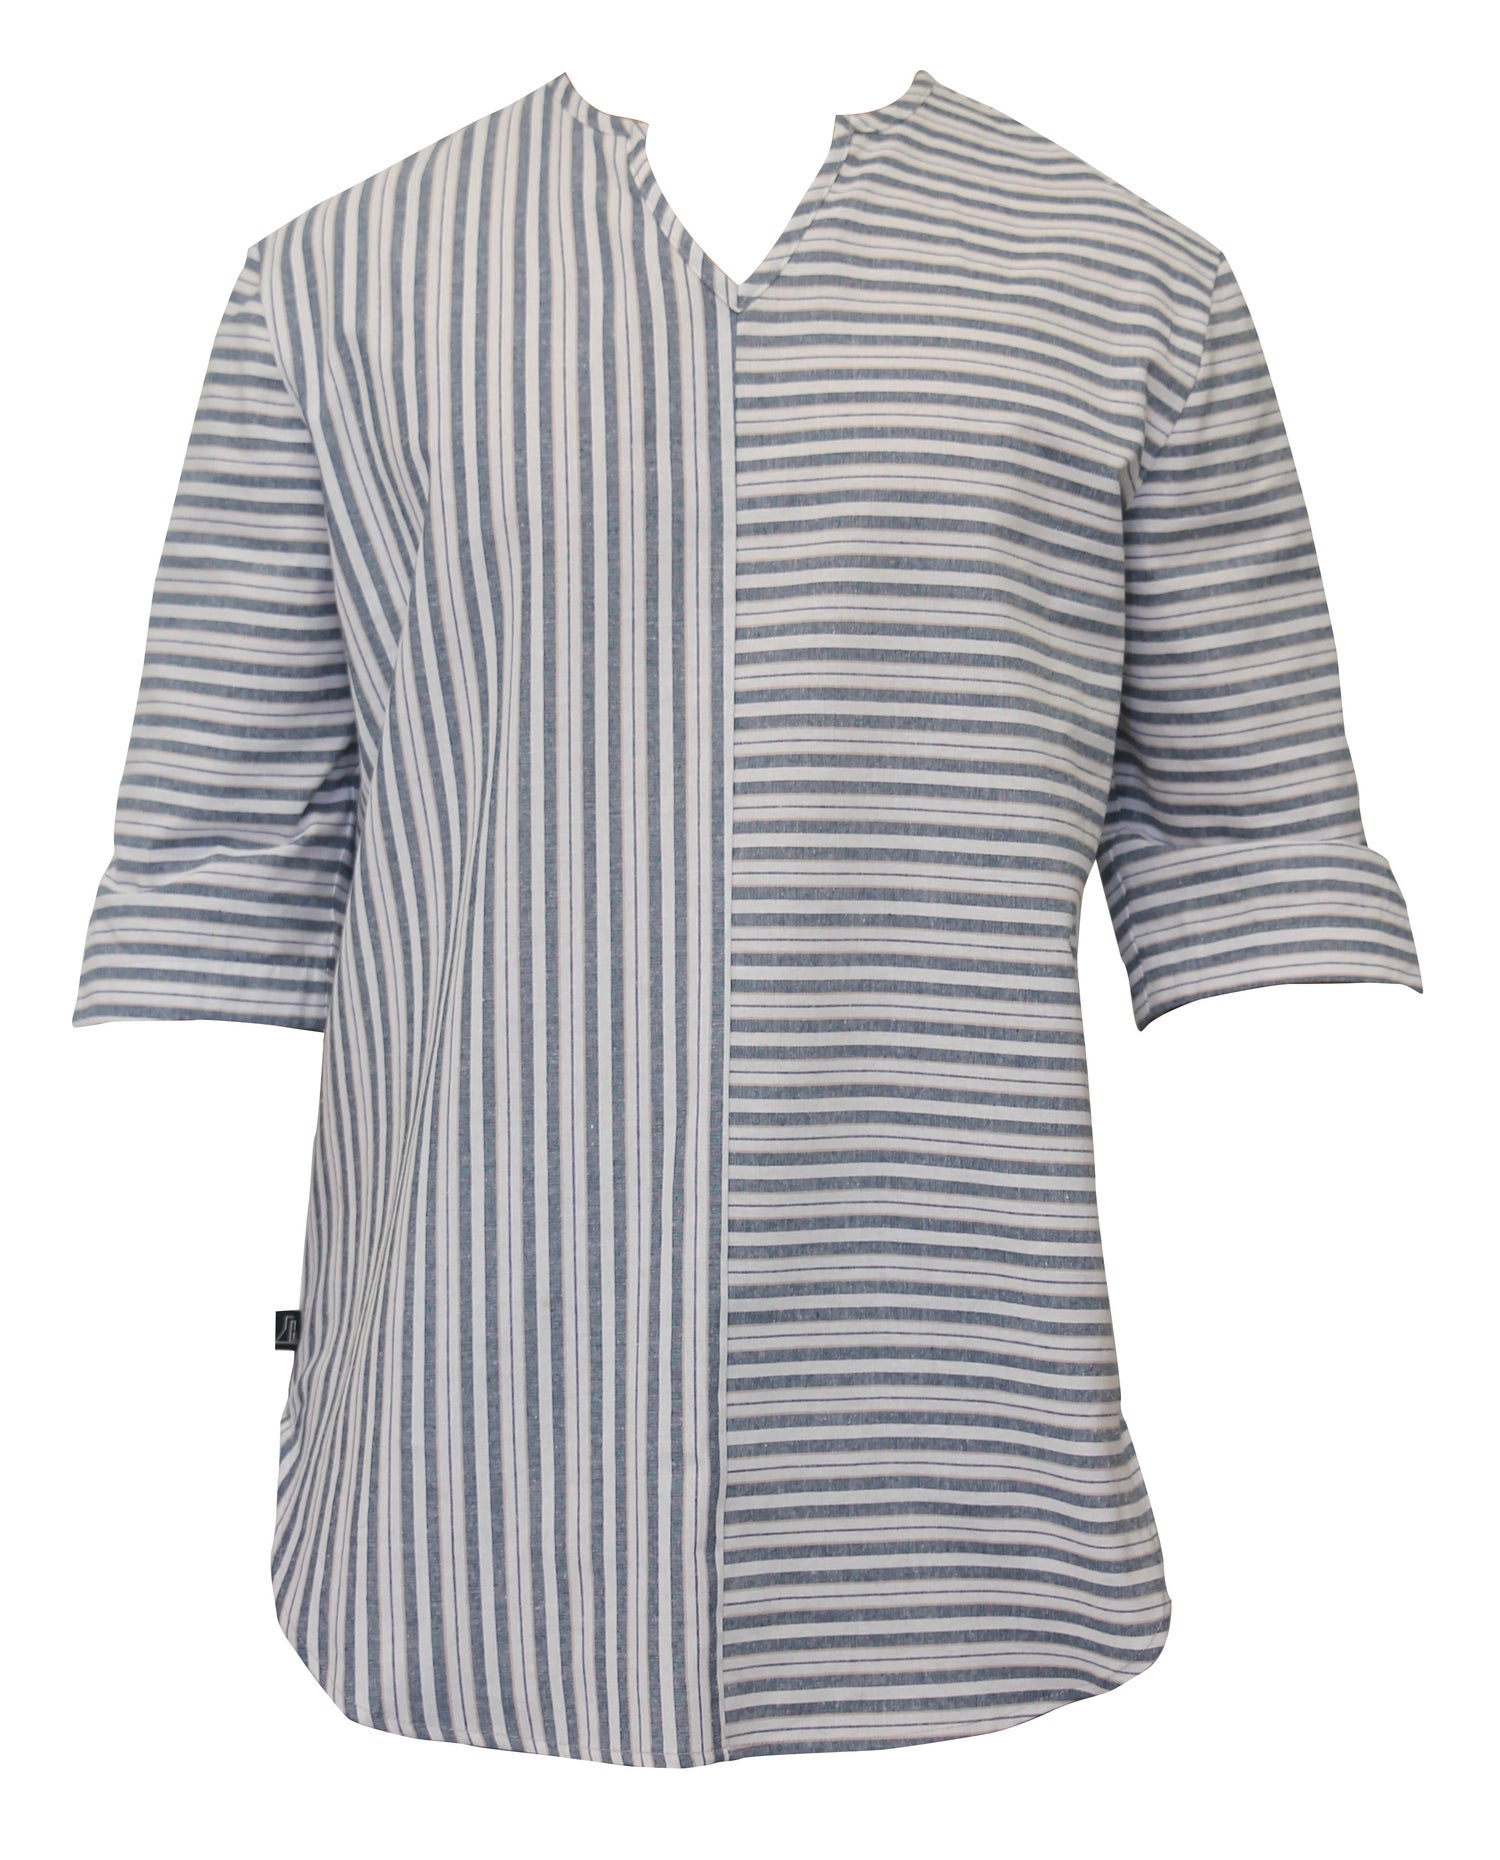 Image of Stripe Linen Boho Shirt